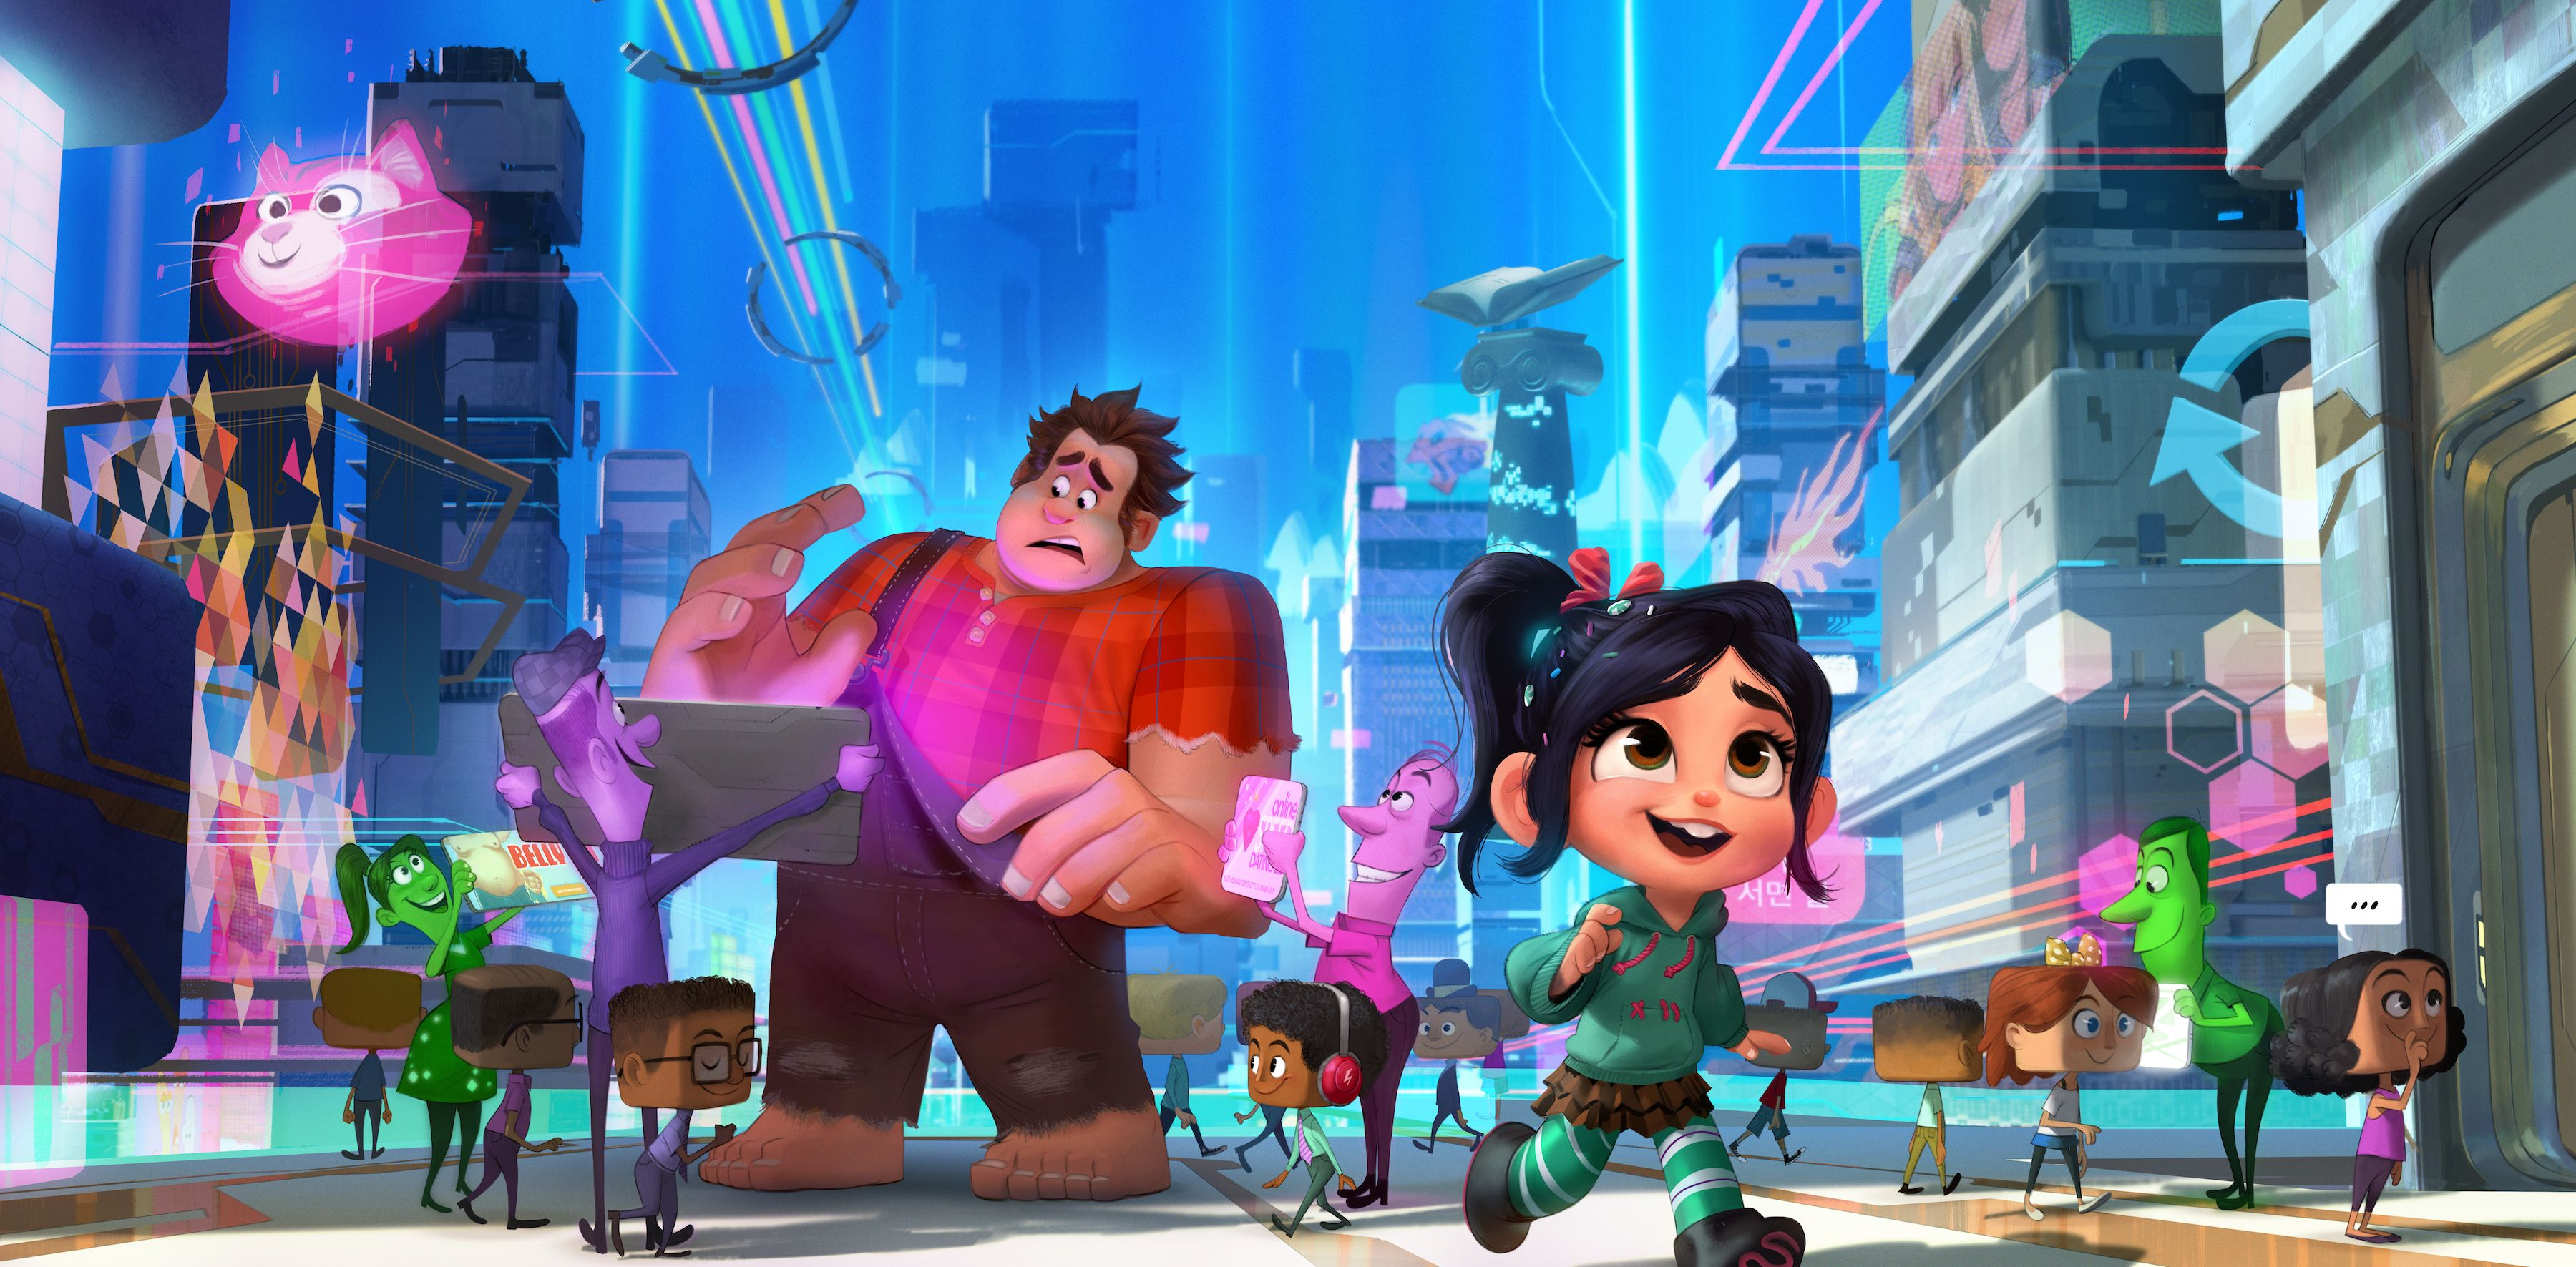 new wreckit ralph 2 poster reveals who broke the internet